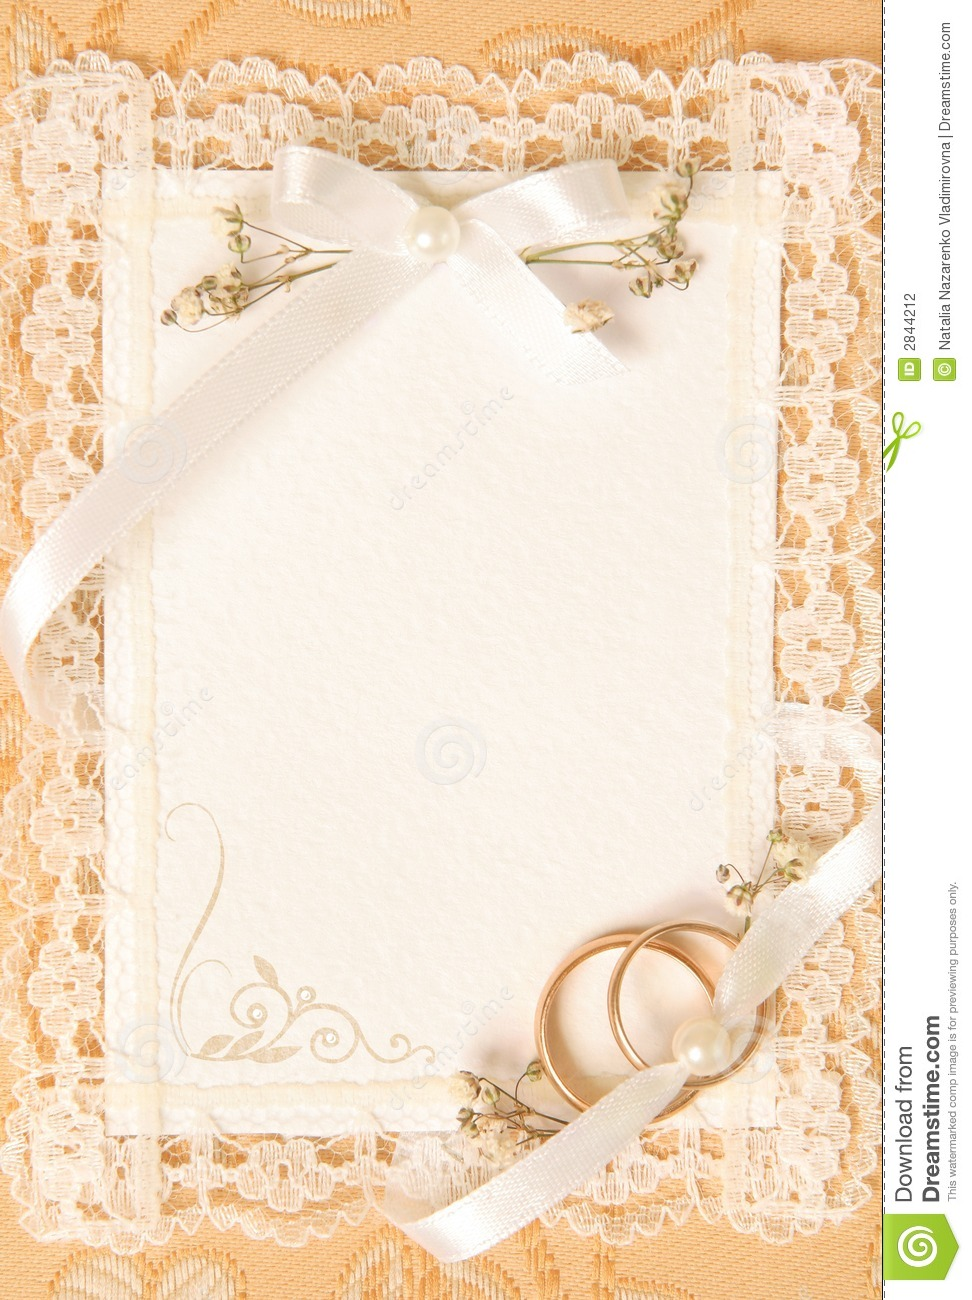 Wedding Invitation Card Stock Photo Image Of Floral